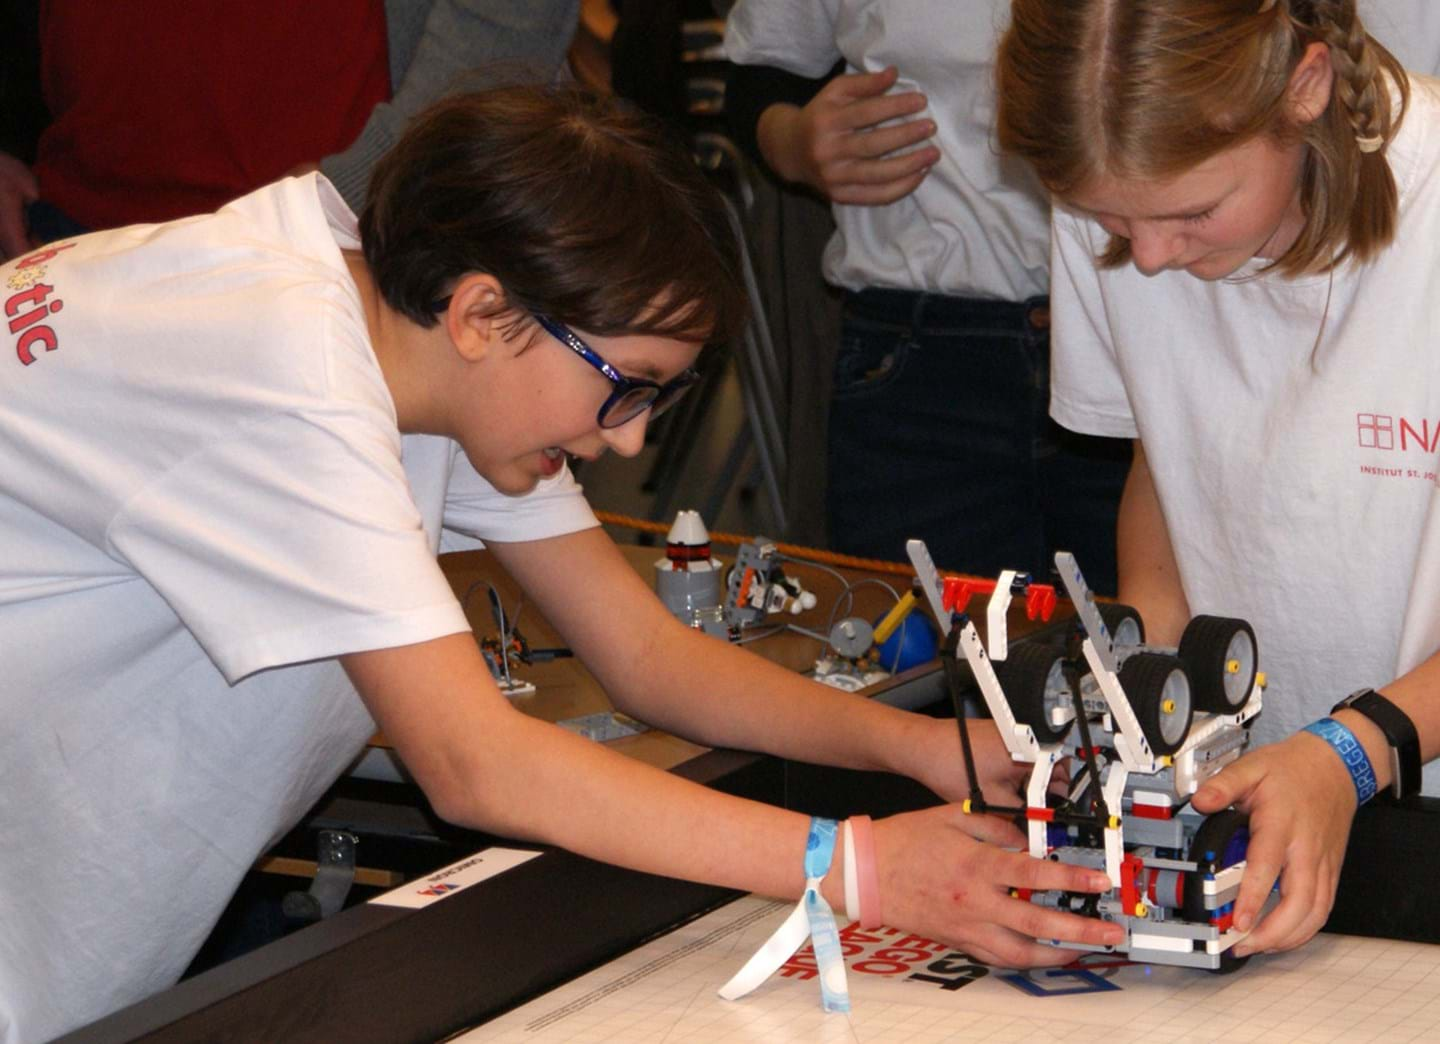 Final of the FIRST® LEGO® League to be held for the first time at Bregenz Festival House